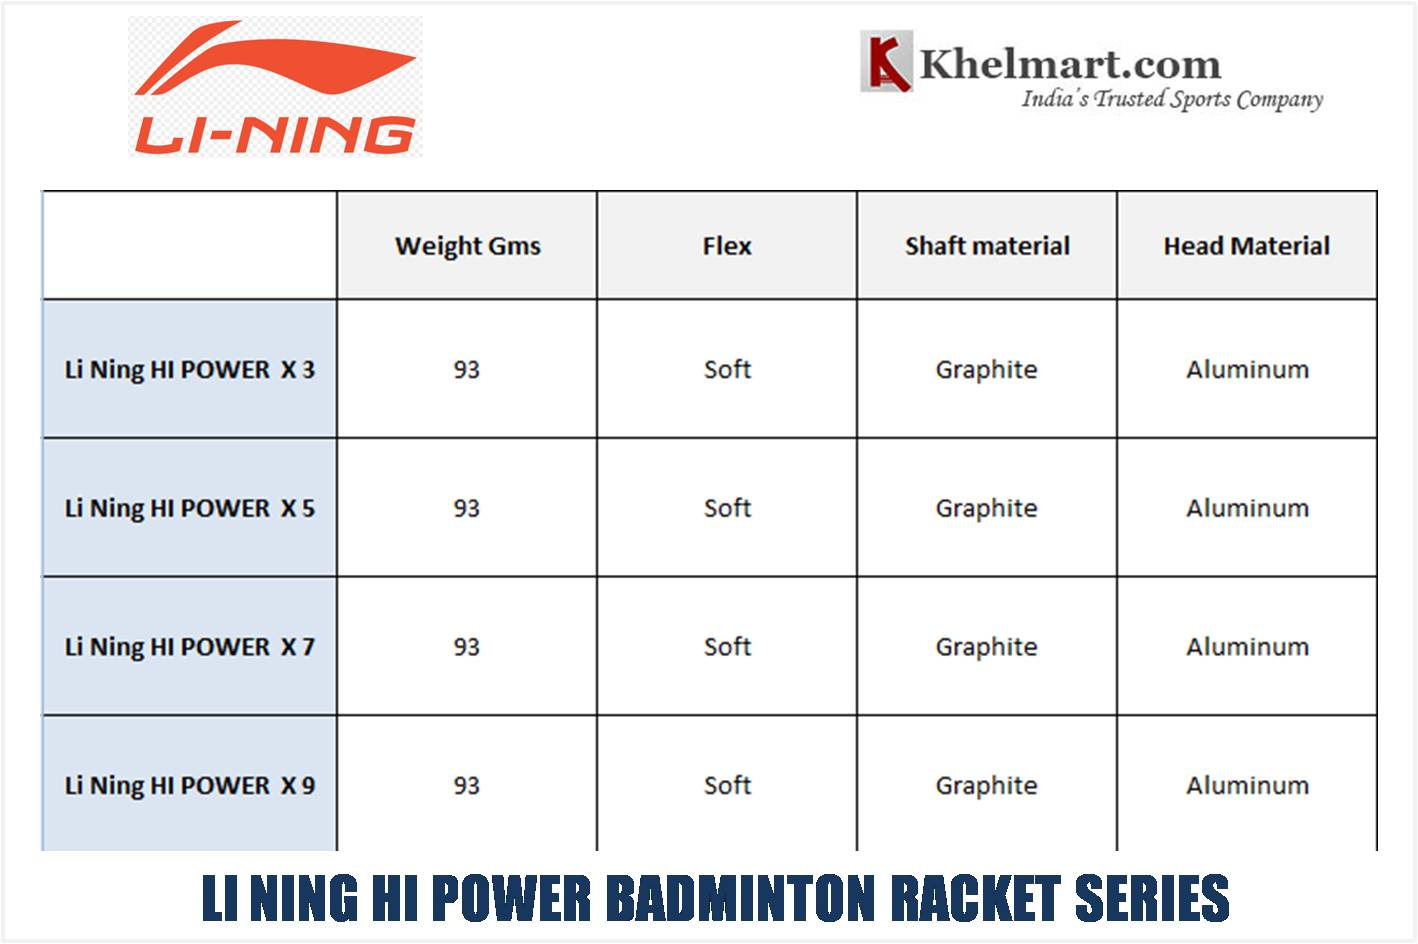 LI_NING_HI_POwer_BADMINTON_RACKET_SERIES_by_Khelmart_Chart_View